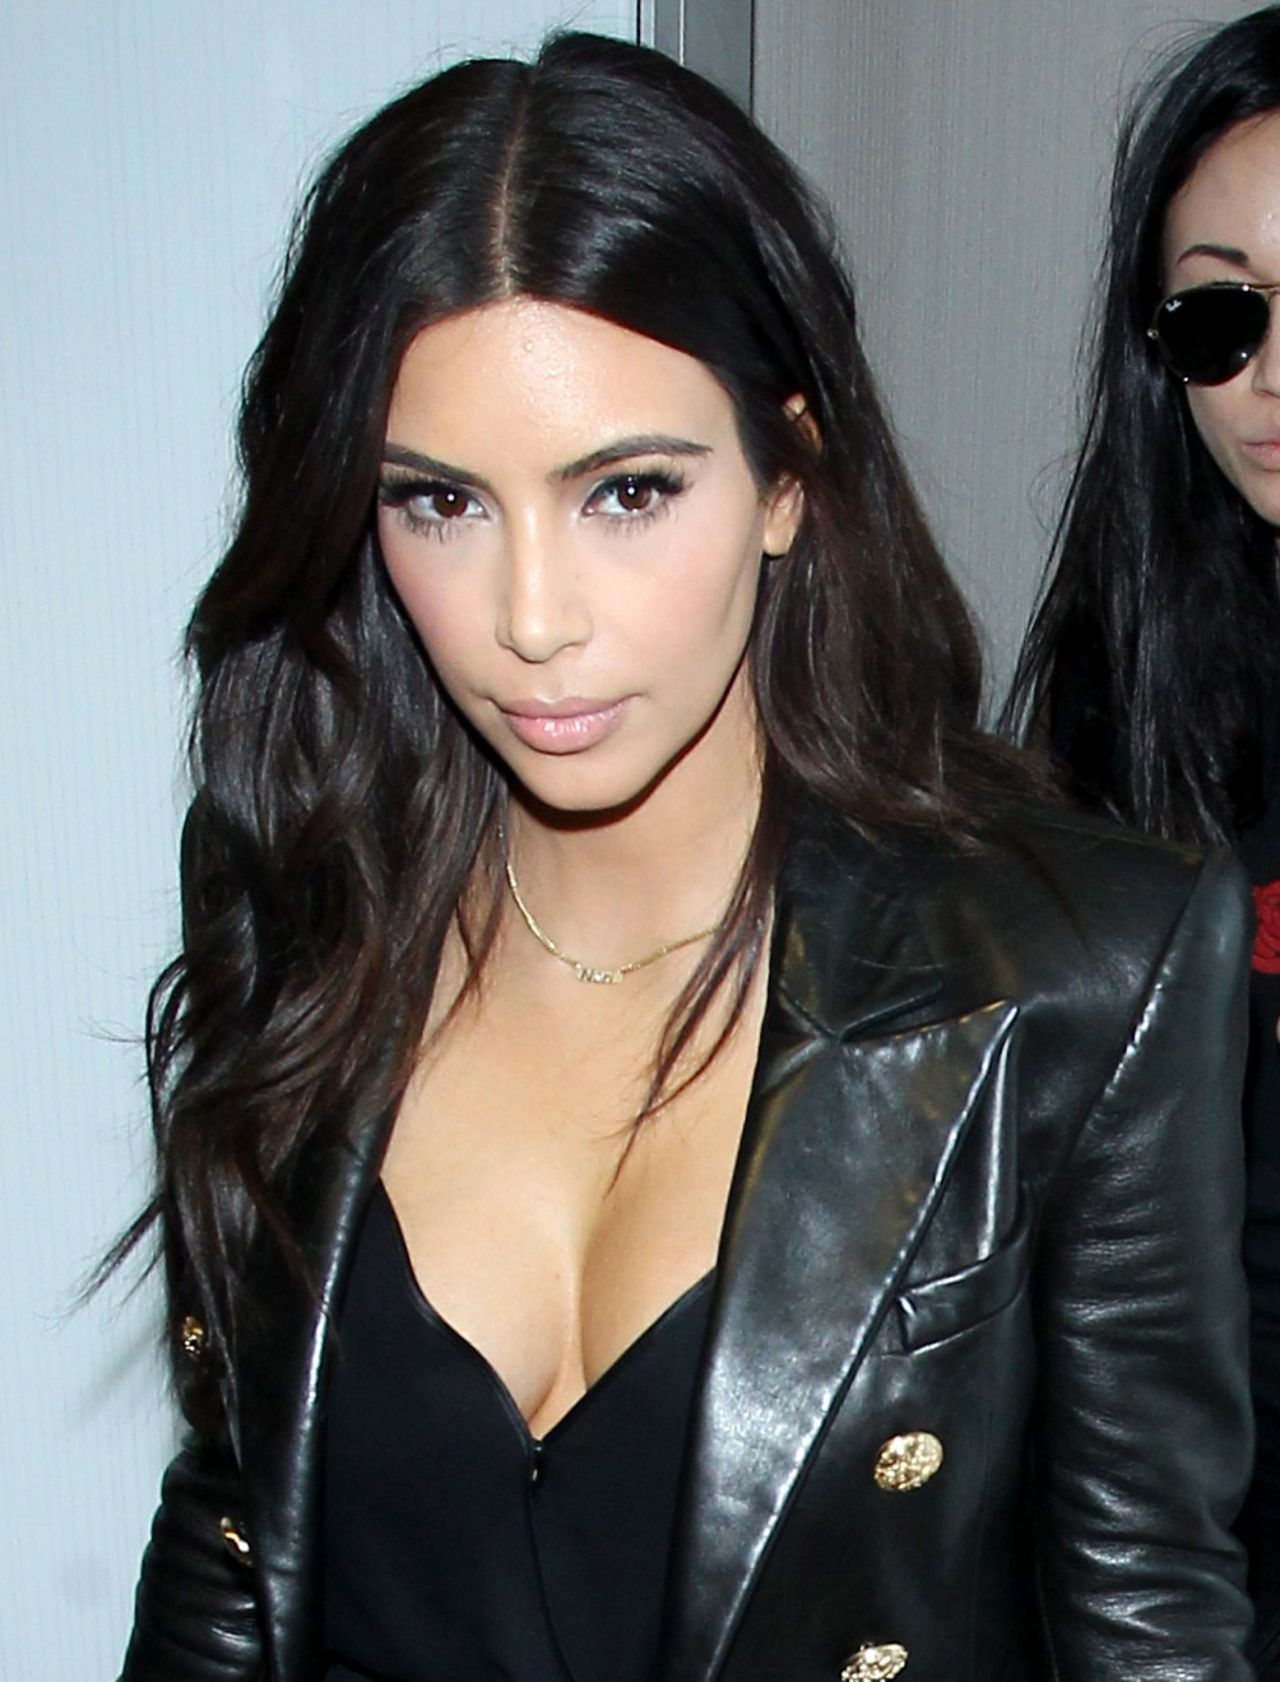 Kim Kardashian Lax Airport March 2014